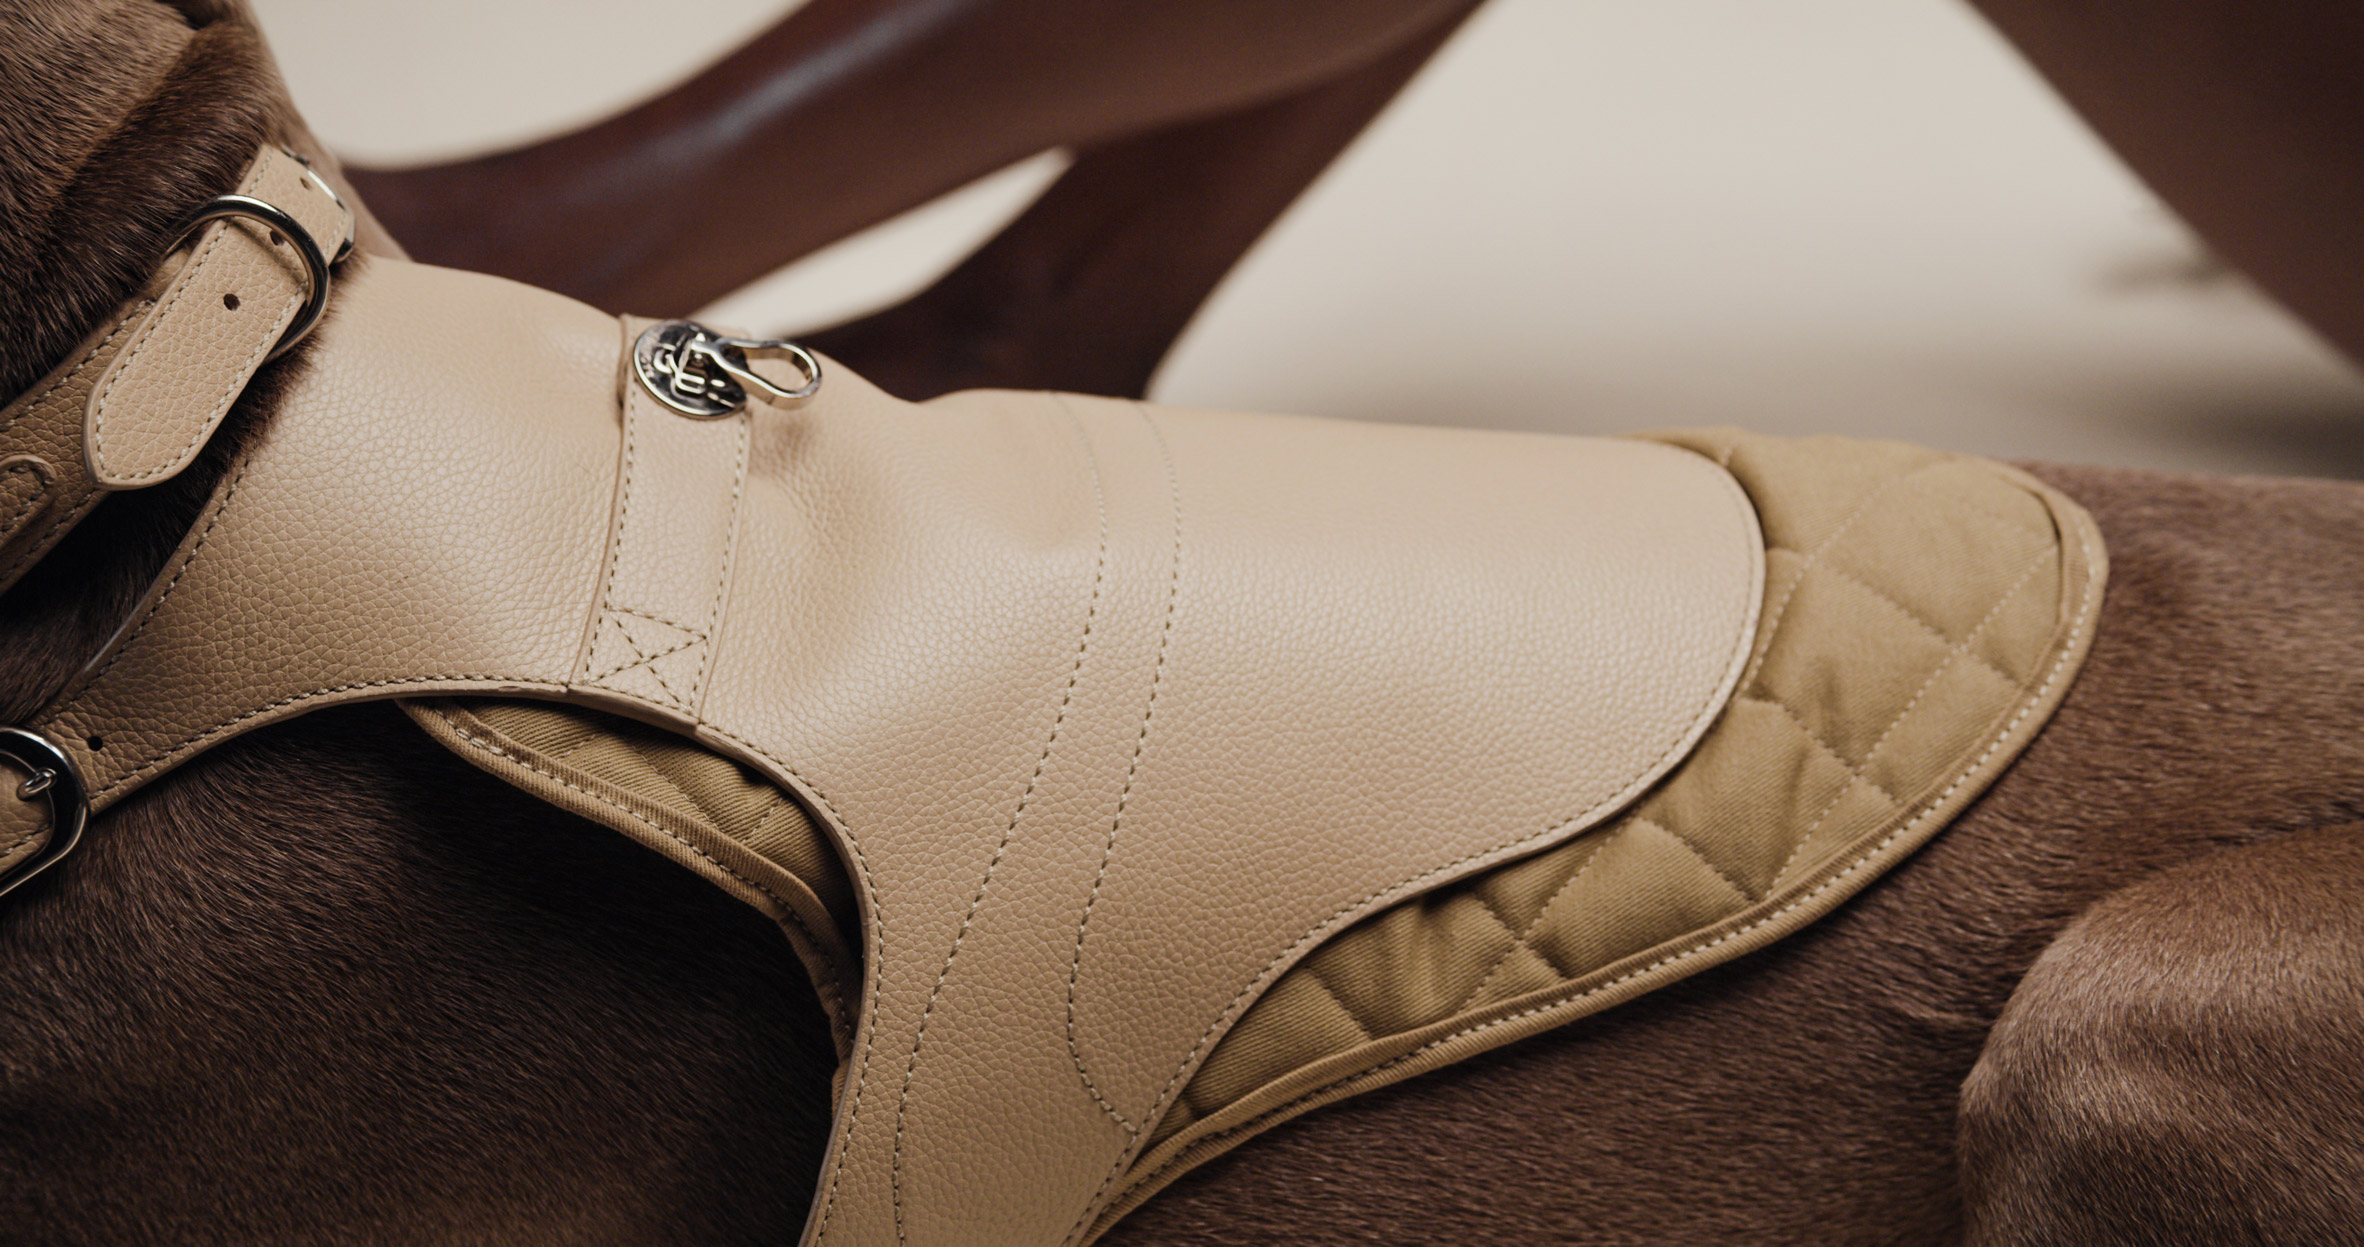 The Babbi harness and quilted lining